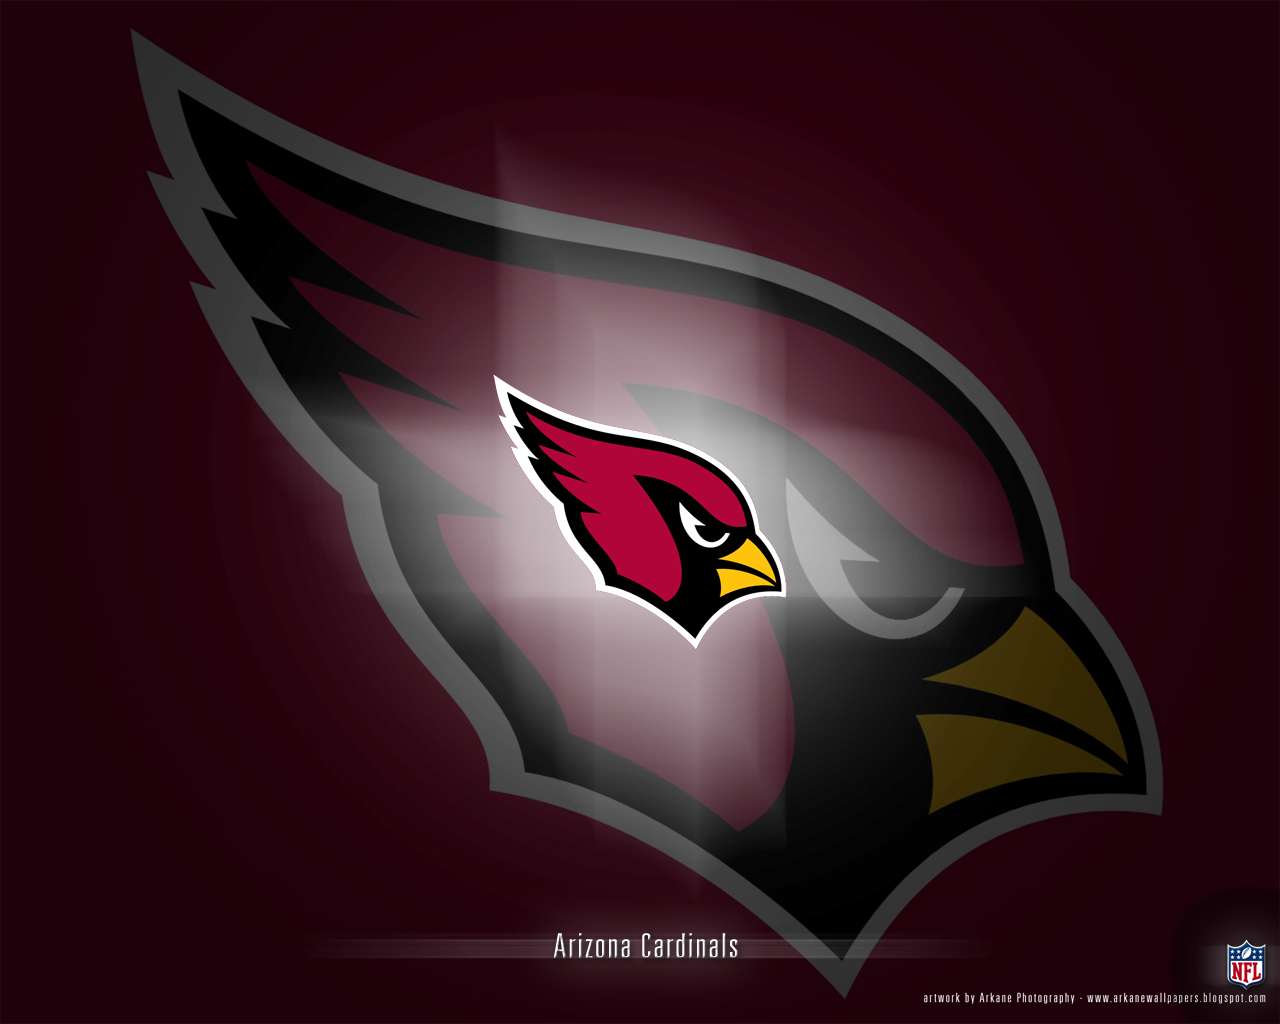 Arkane NFL Wallpapers Arizona Cardinals   Vol 1 1280x1024